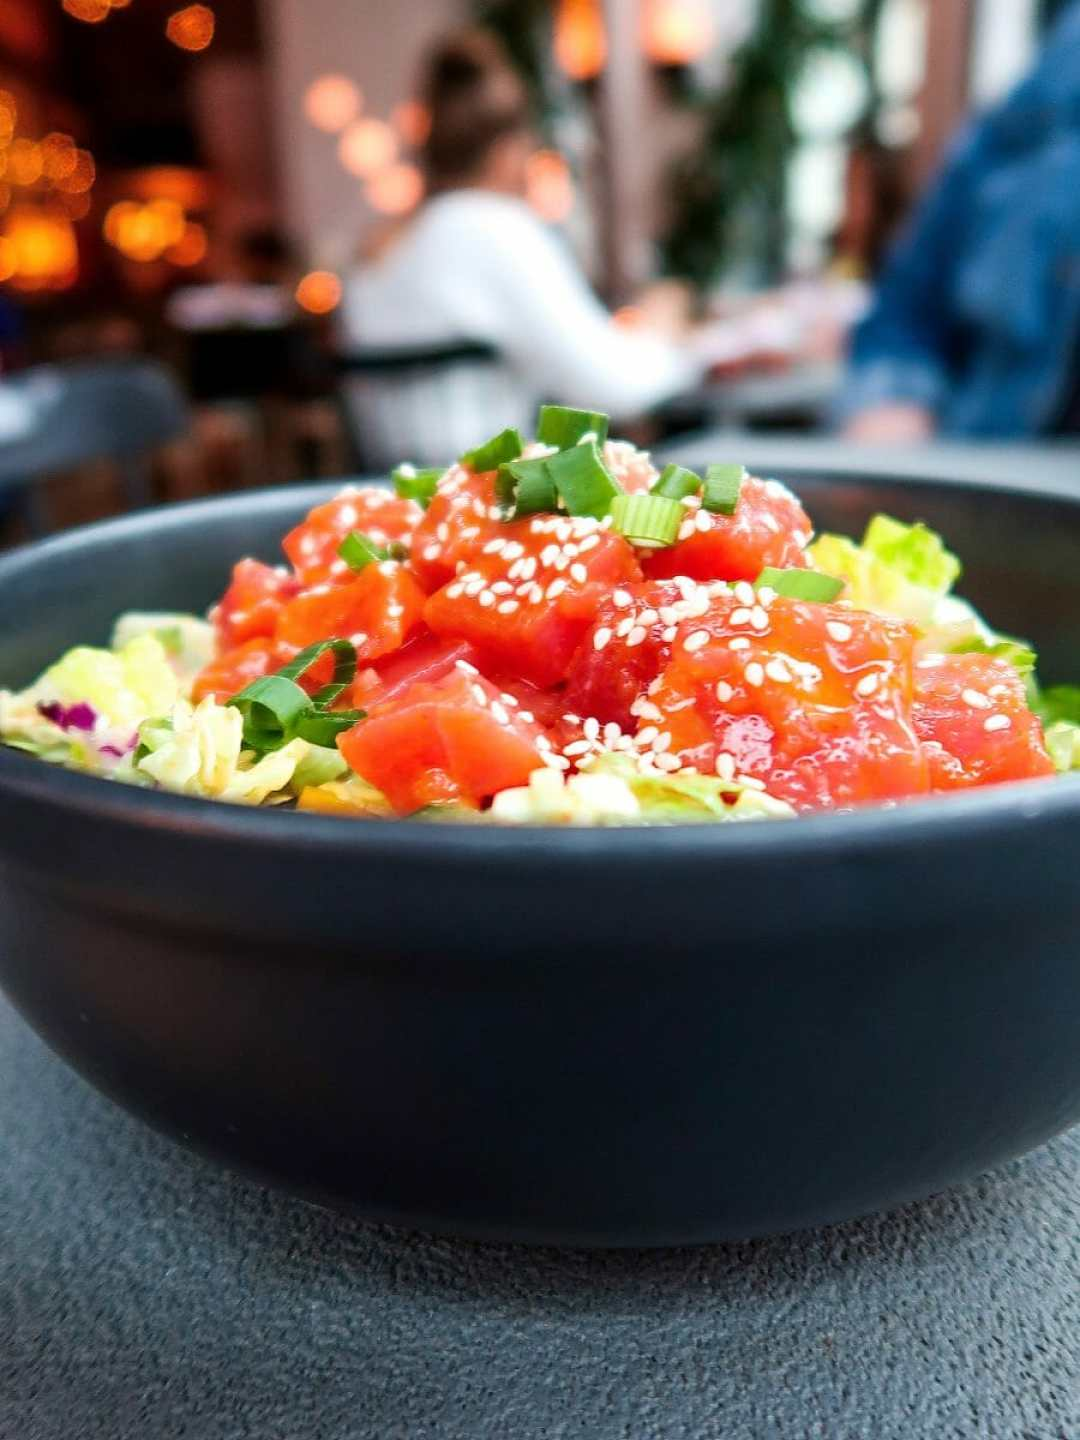 Tuna poke bowl at Porch Kitchen and Bar, Downtown Louisville, KY